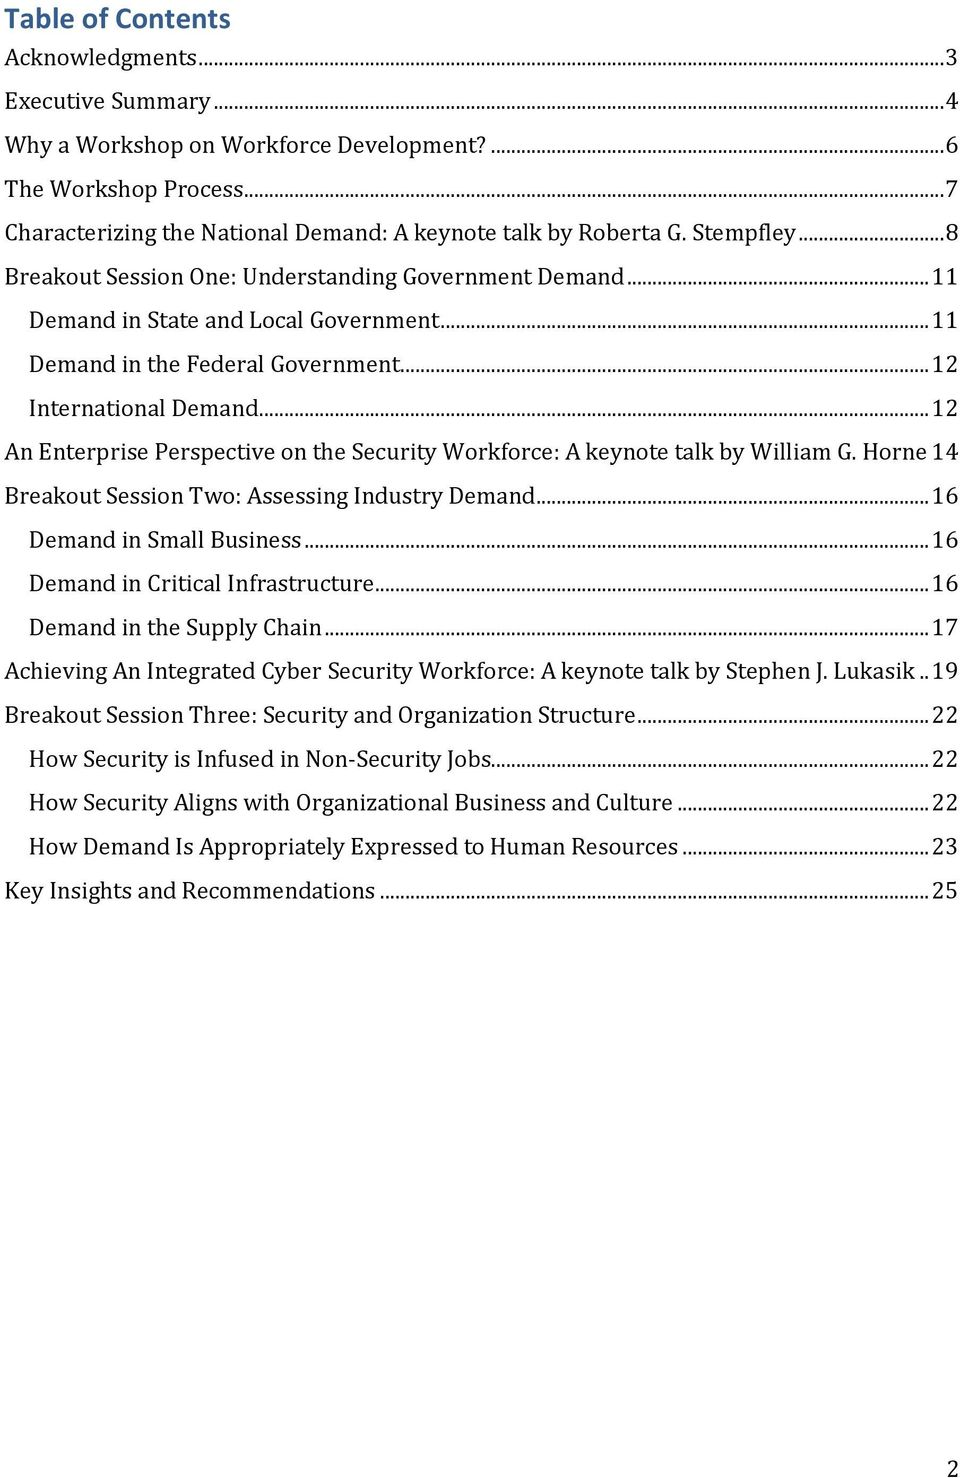 .. 12 An Enterprise Perspective on the Security Workforce: A keynote talk by William G. Horne 14 Breakout Session Two: Assessing Industry Demand... 16 Demand in Small Business.